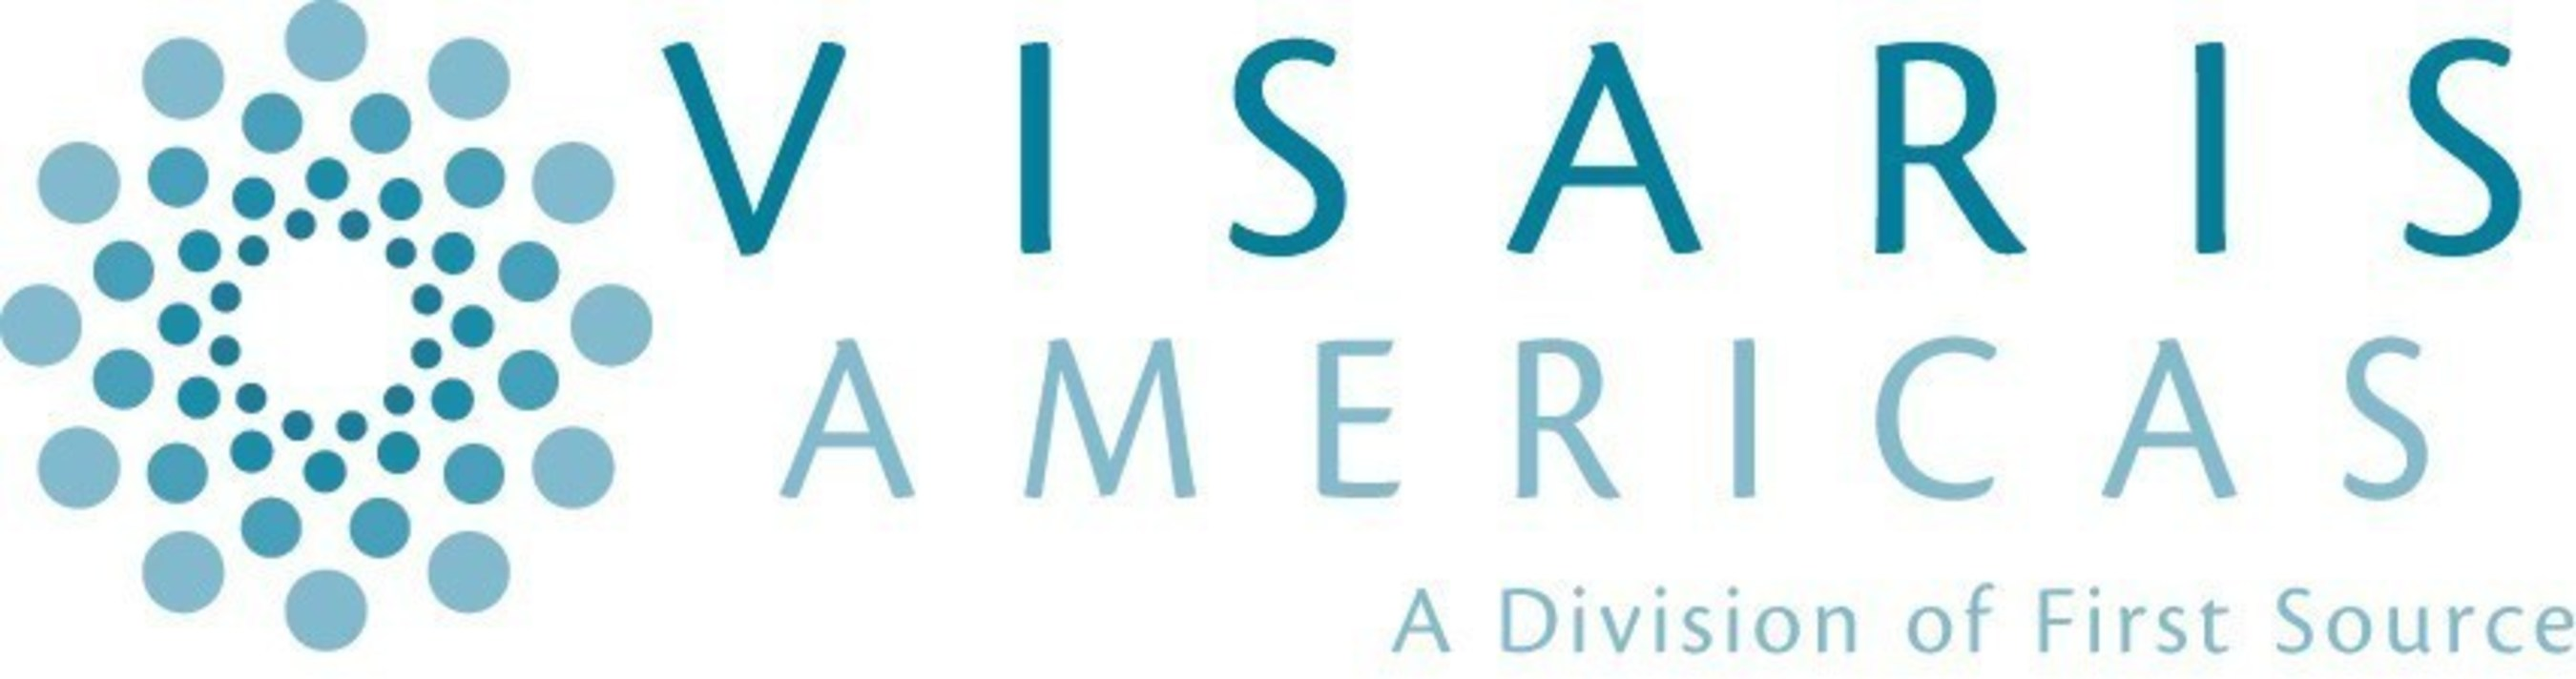 Visaris Americas is a unique entity that brings together a culture of strong service and technical expertise with European-based style, innovative technology and ergonomics to provide a versatile digital radiography product portfolio for the North American and South American markets. www.visarisamericas.com